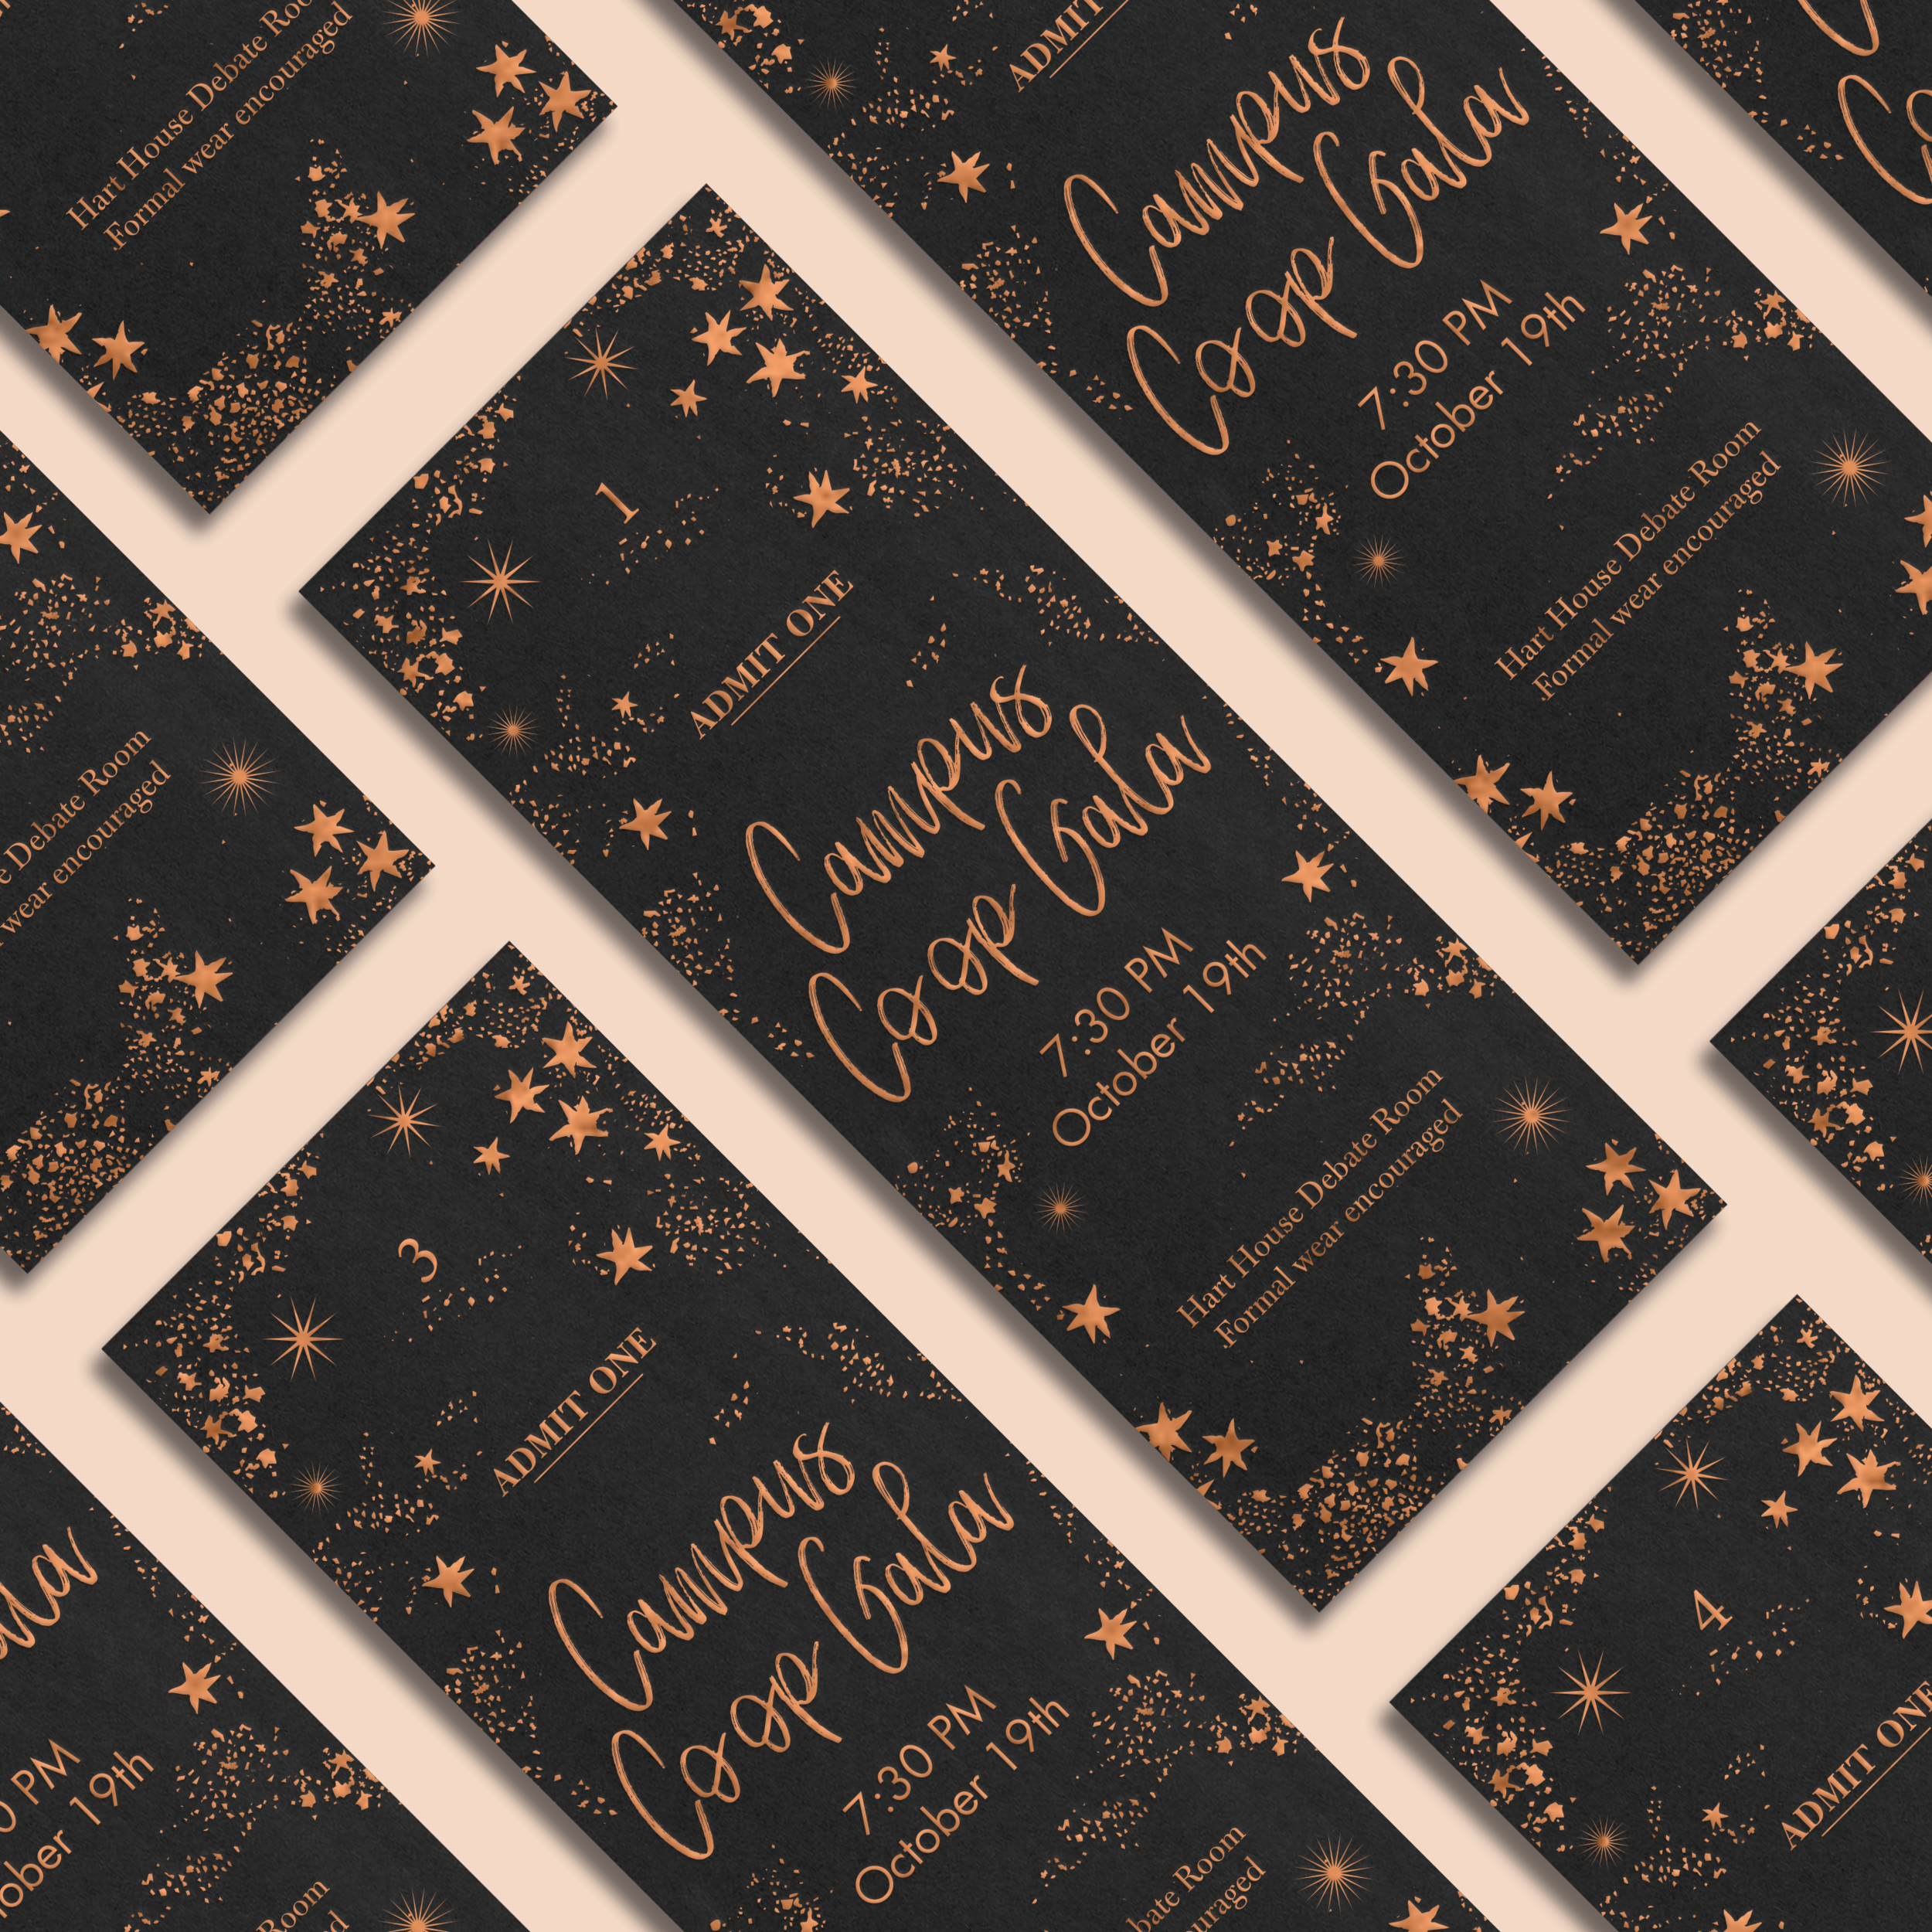 gala ticket mock up.png